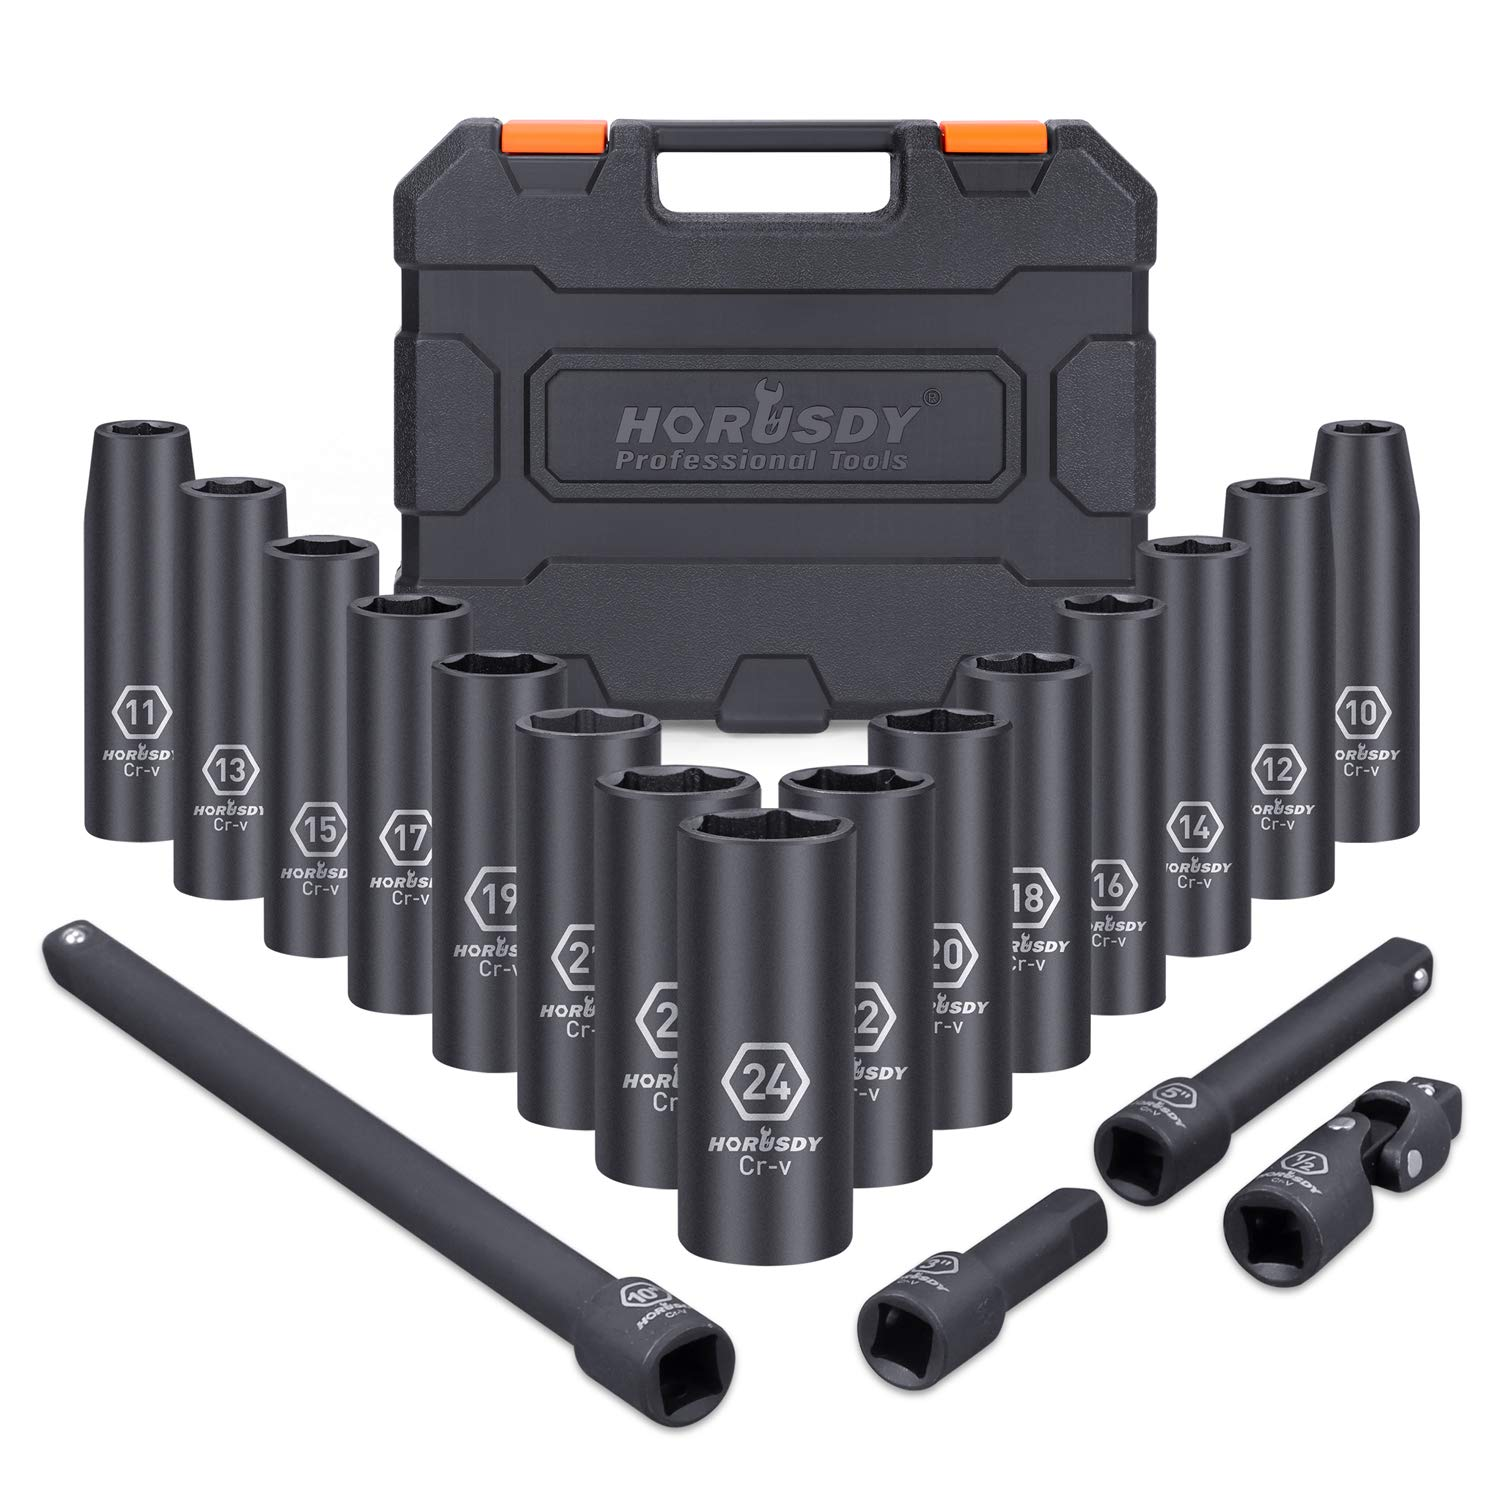 HORUSDY 1/2-Inch Drive Deep Impact Socket Set, 19-Piece 10mm - 24mm 6-Point Metric Drive Sockets Set